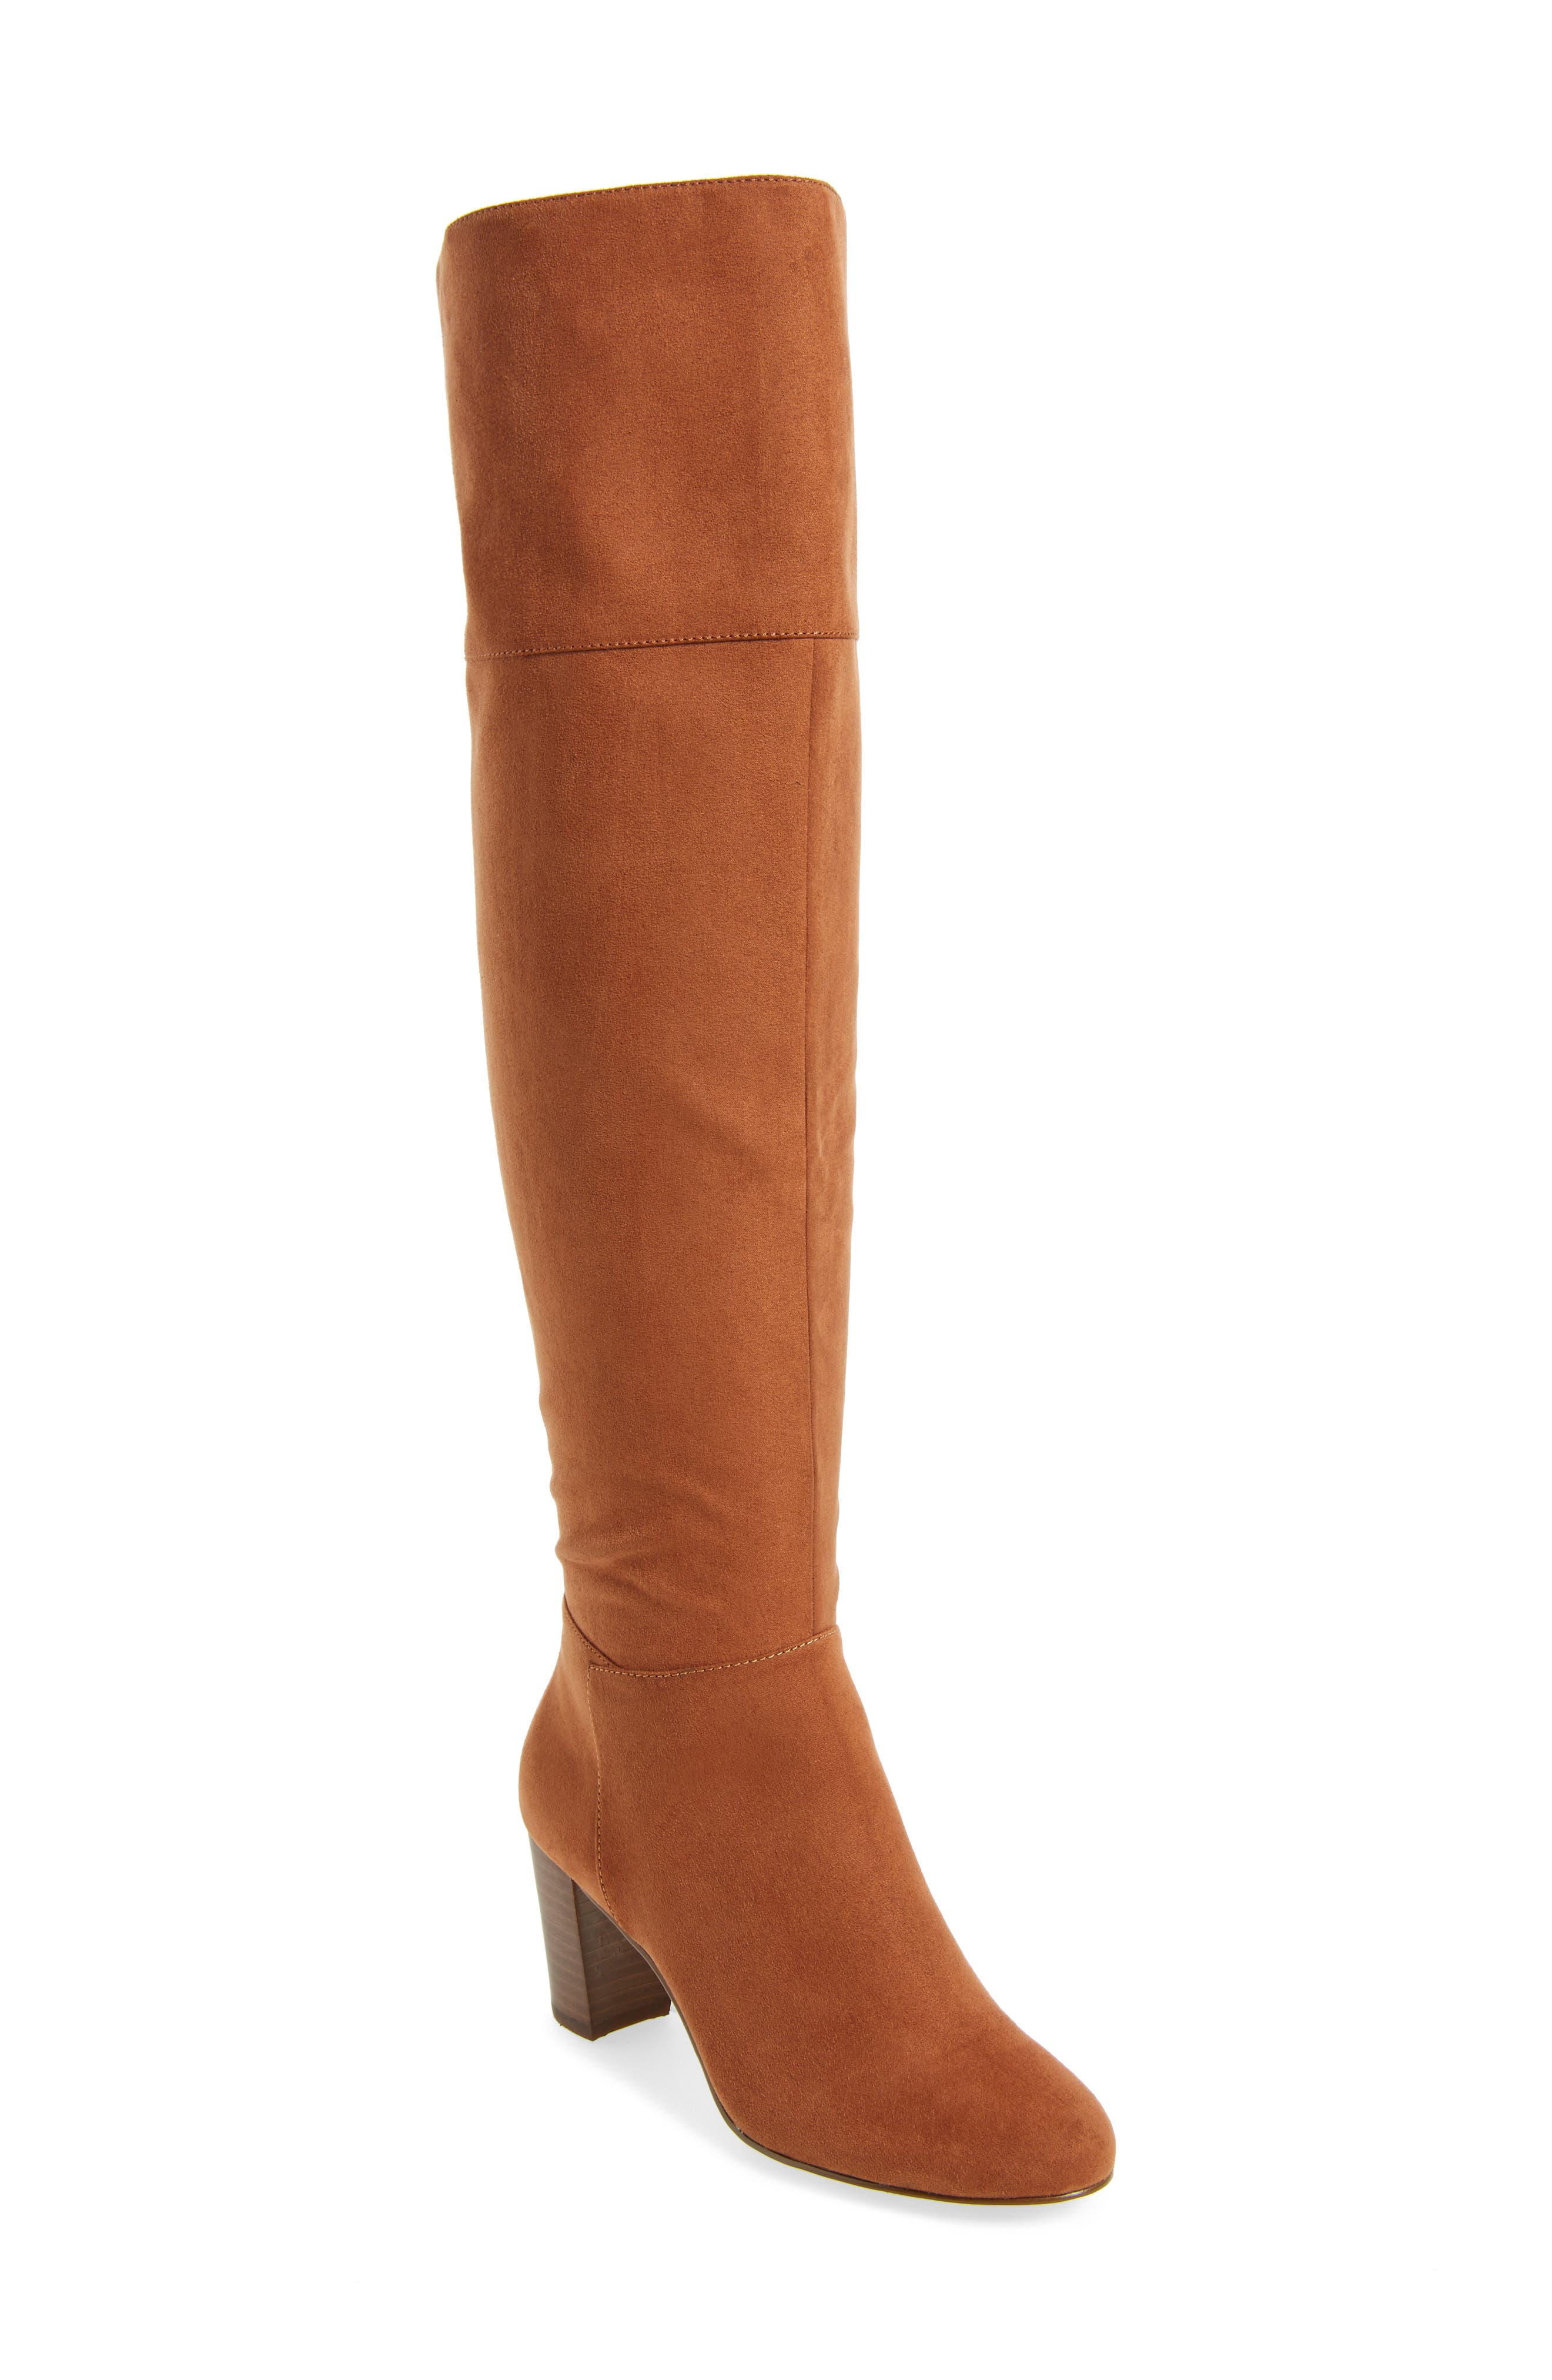 Telluride II Over the Knee Boot,                             Main thumbnail 3, color,